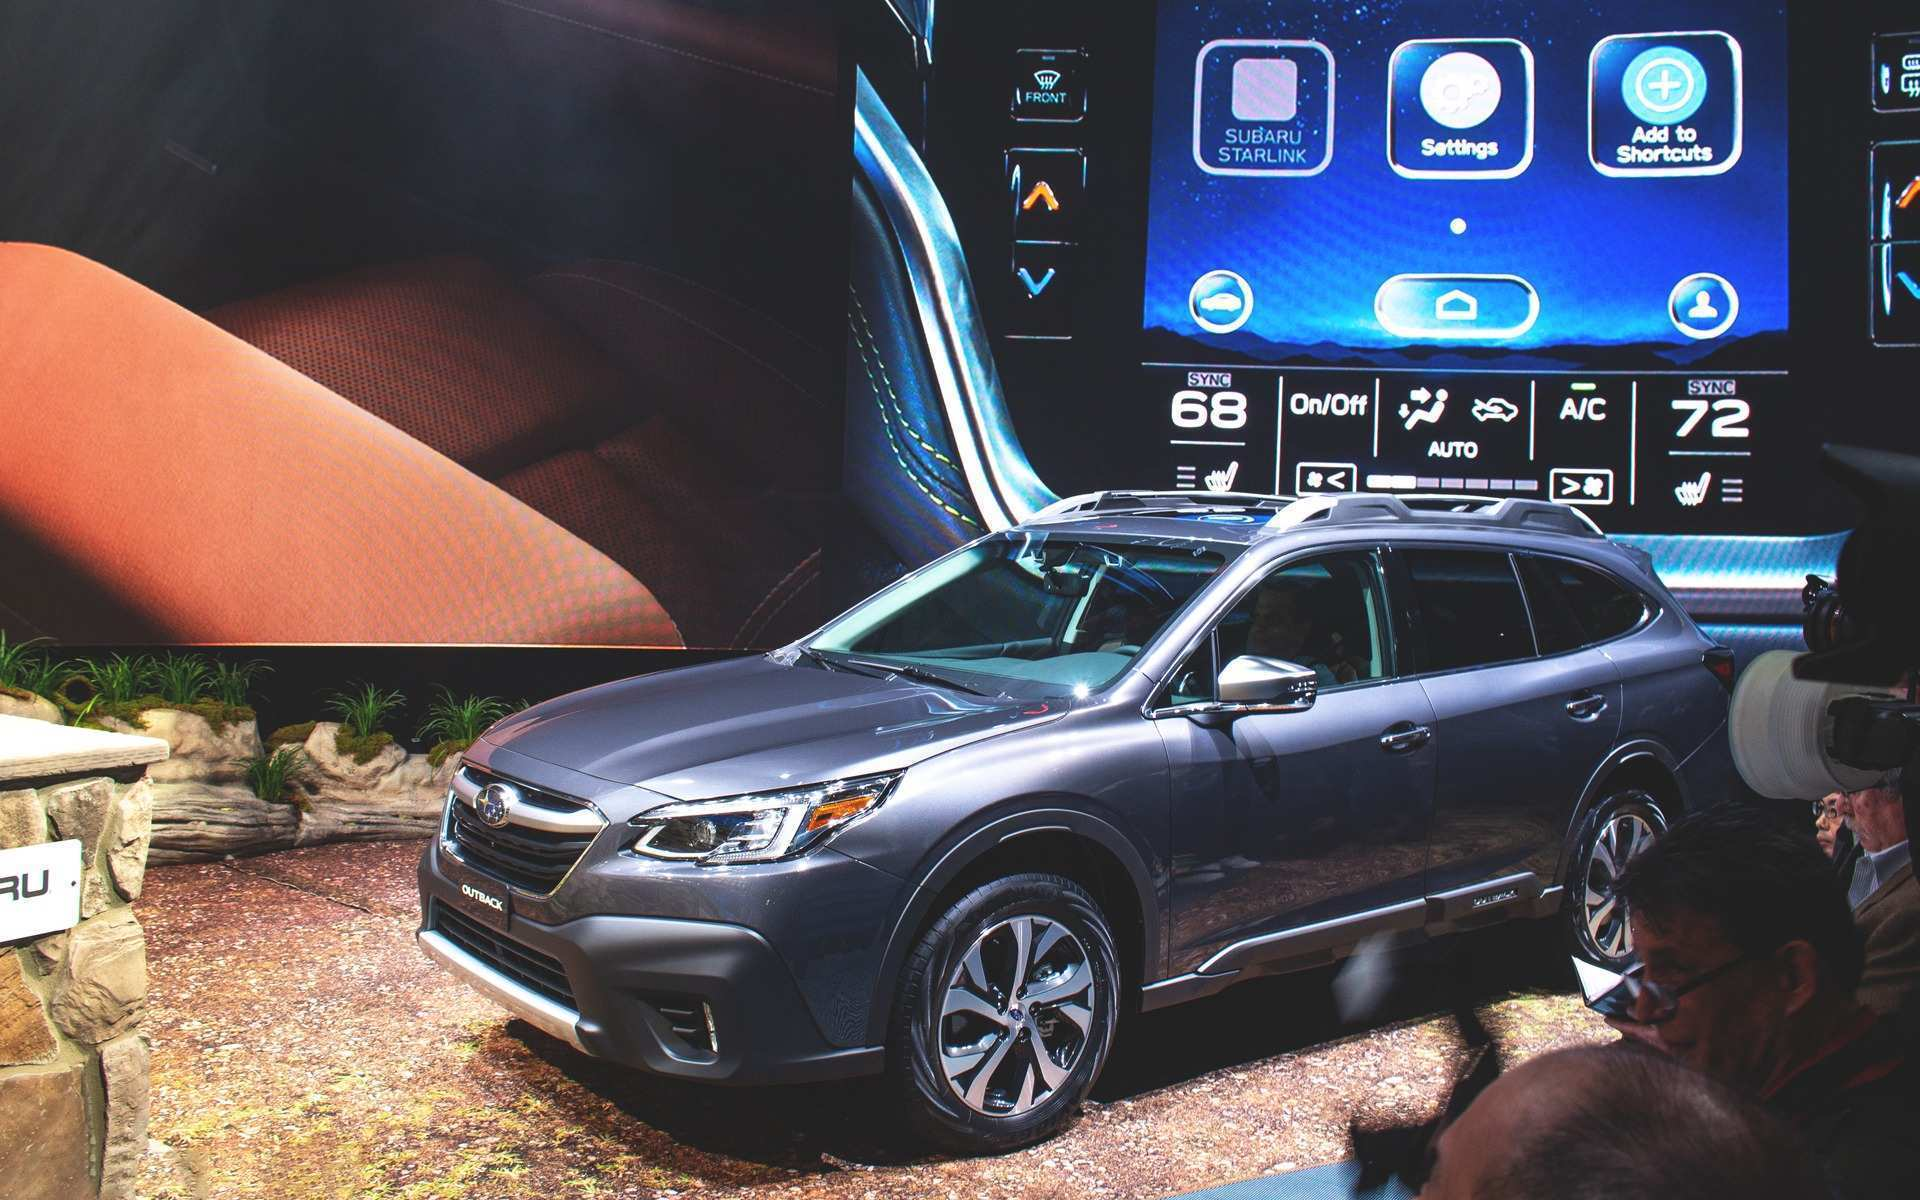 47 The Best 2020 Subaru Outback Turbo Hybrid Pictures